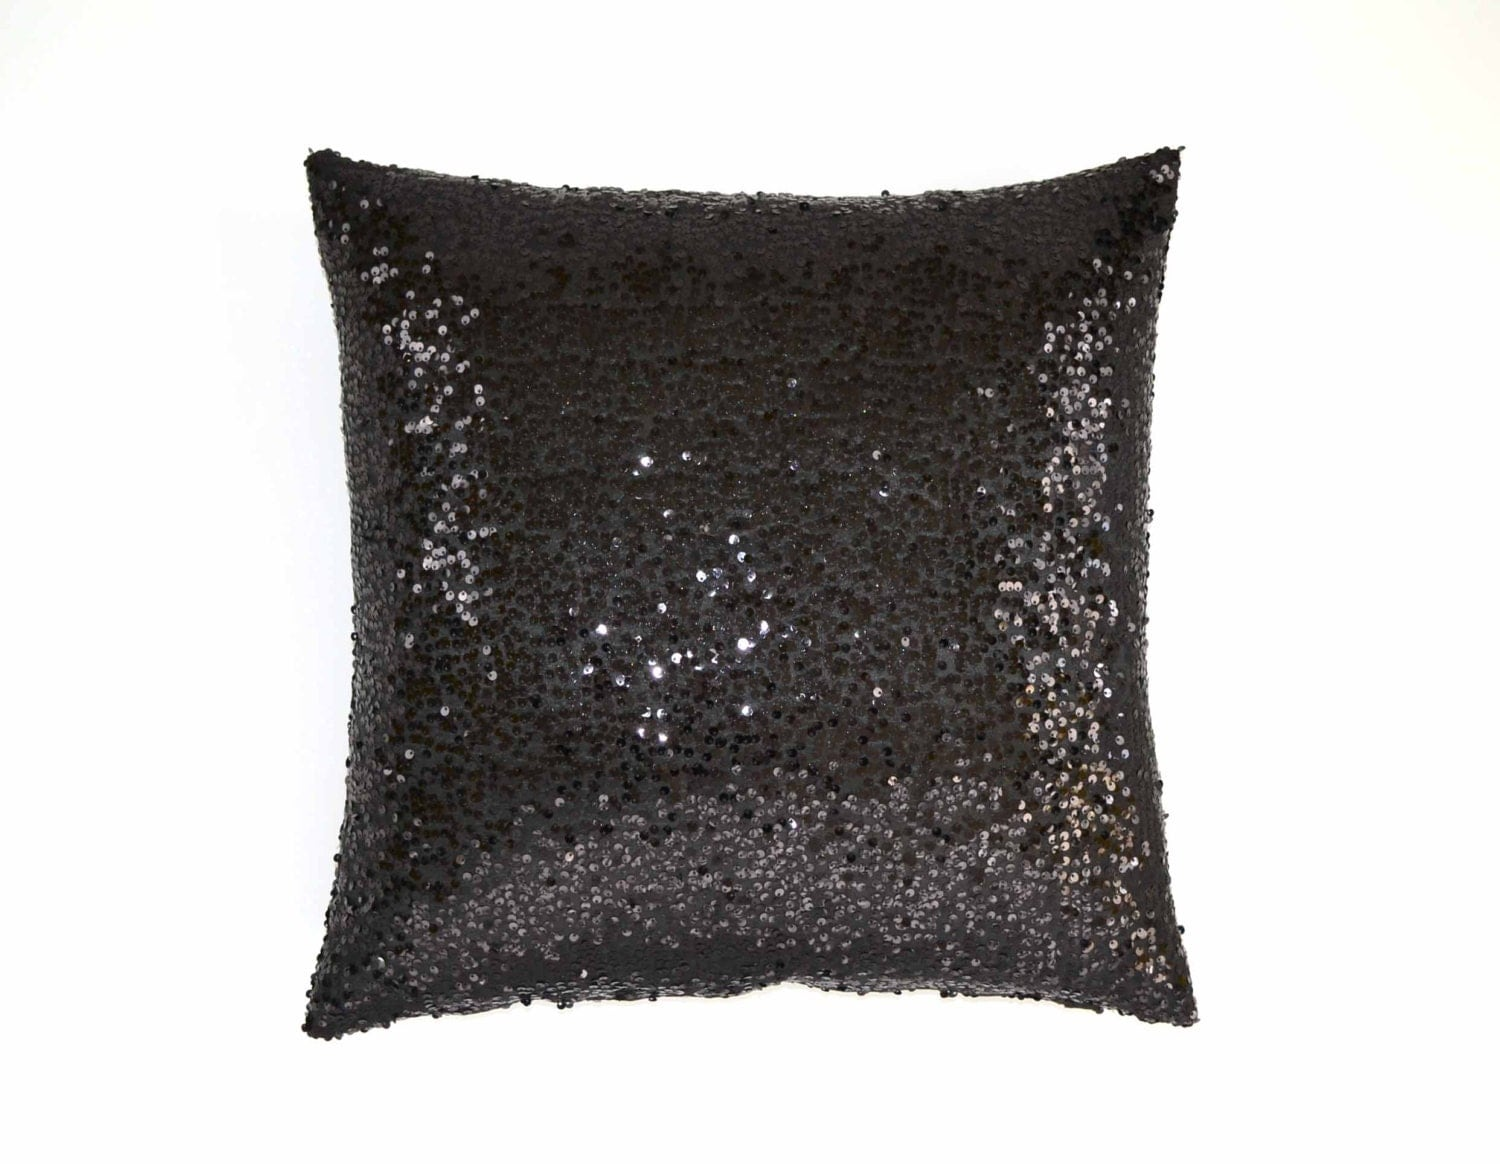 Black Sparkle Throw Pillow : 20 x 20 - Sequin Pillow Cover - Black Taffeta - Decorative Pillow, Throw Pillow, Sparkle Pillow ...